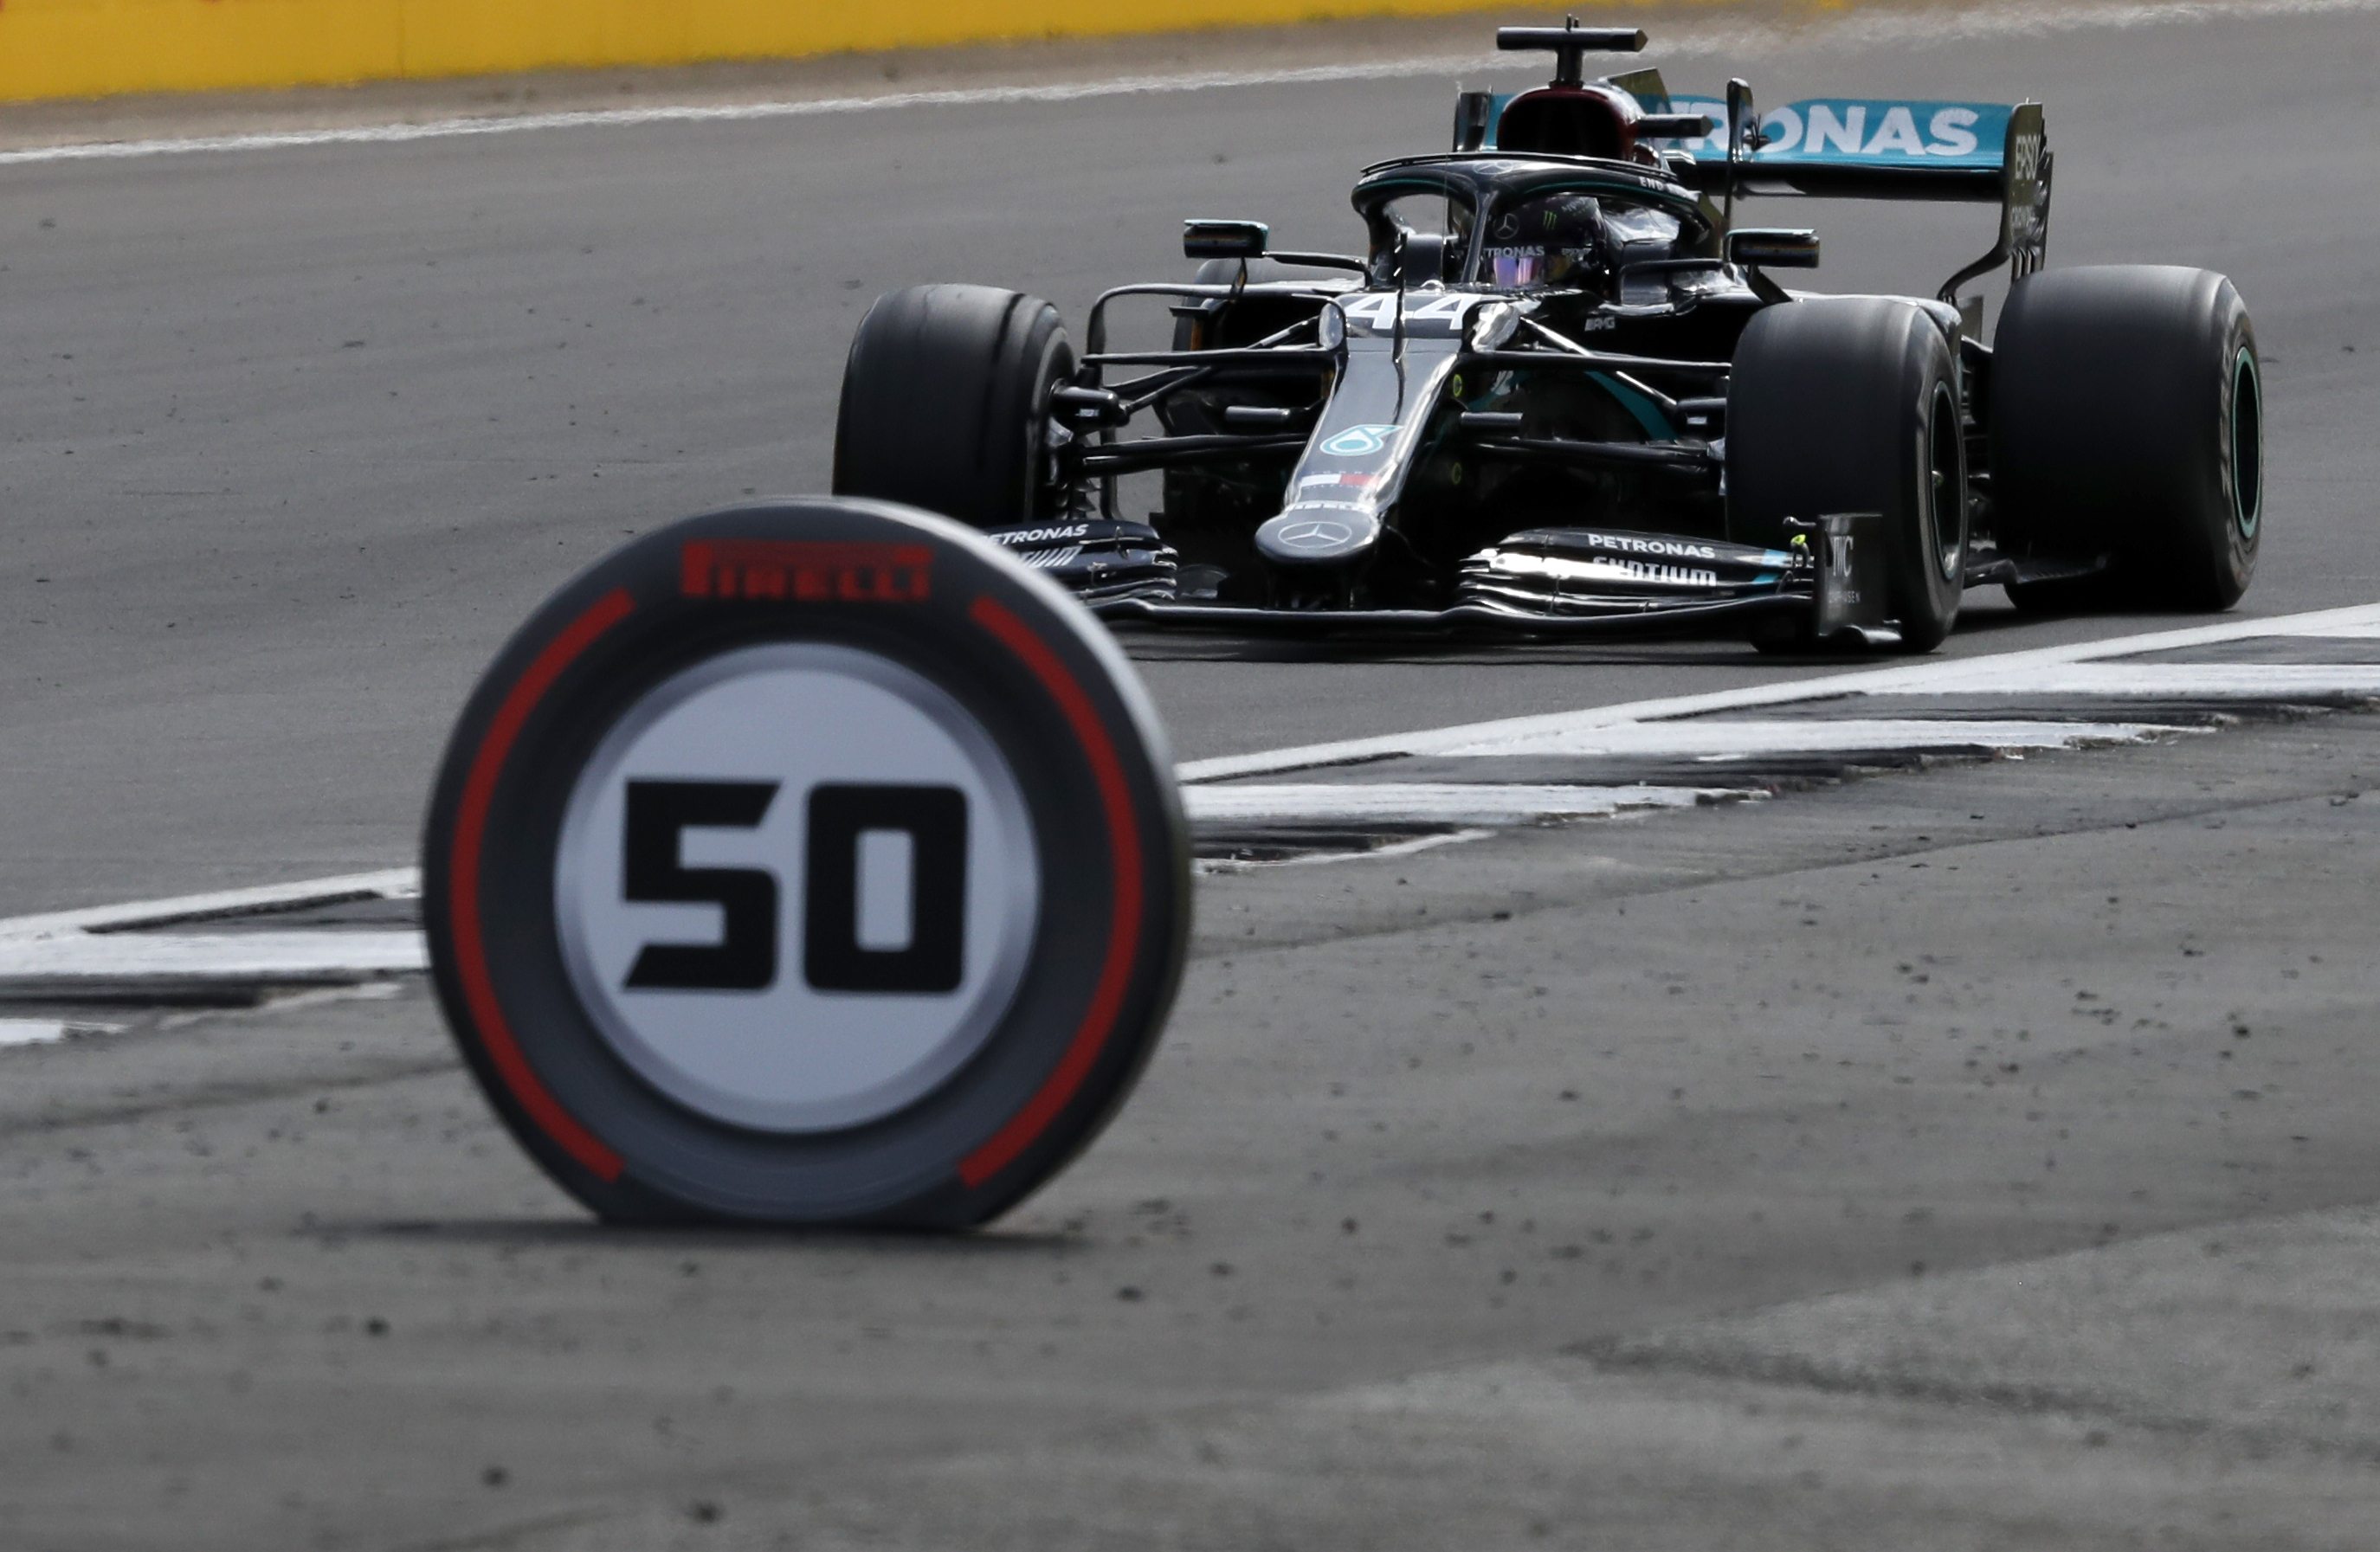 Mercedes driver Lewis Hamilton of Britain steers his car during the British Formula One Grand Prix at the Silverstone racetrack, Silverstone, England, Sunday, Aug. 2, 2020. (AP Photo/Frank Augstein,Pool)